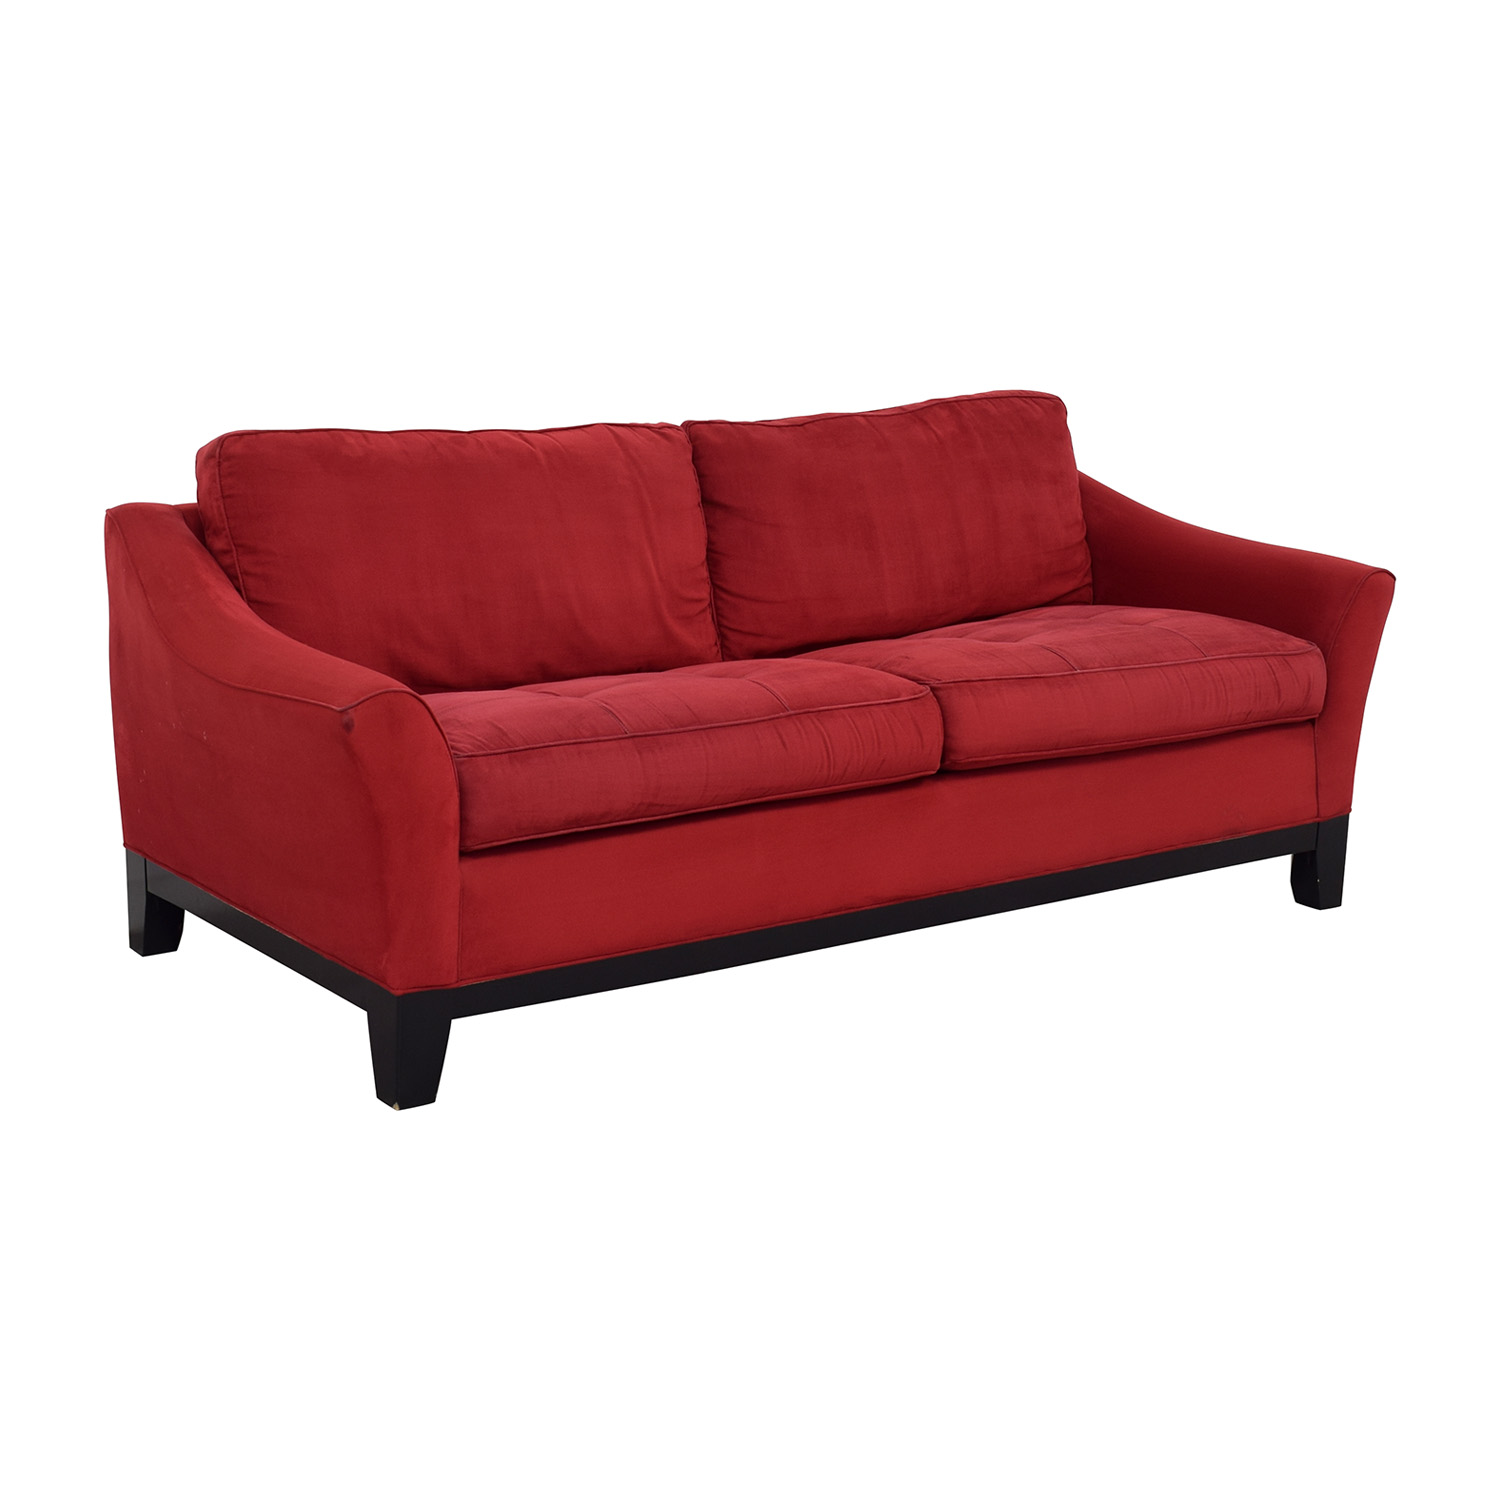 shop Raymour & Flanigan Red Sleeper Sofa Raymour & Flanigan